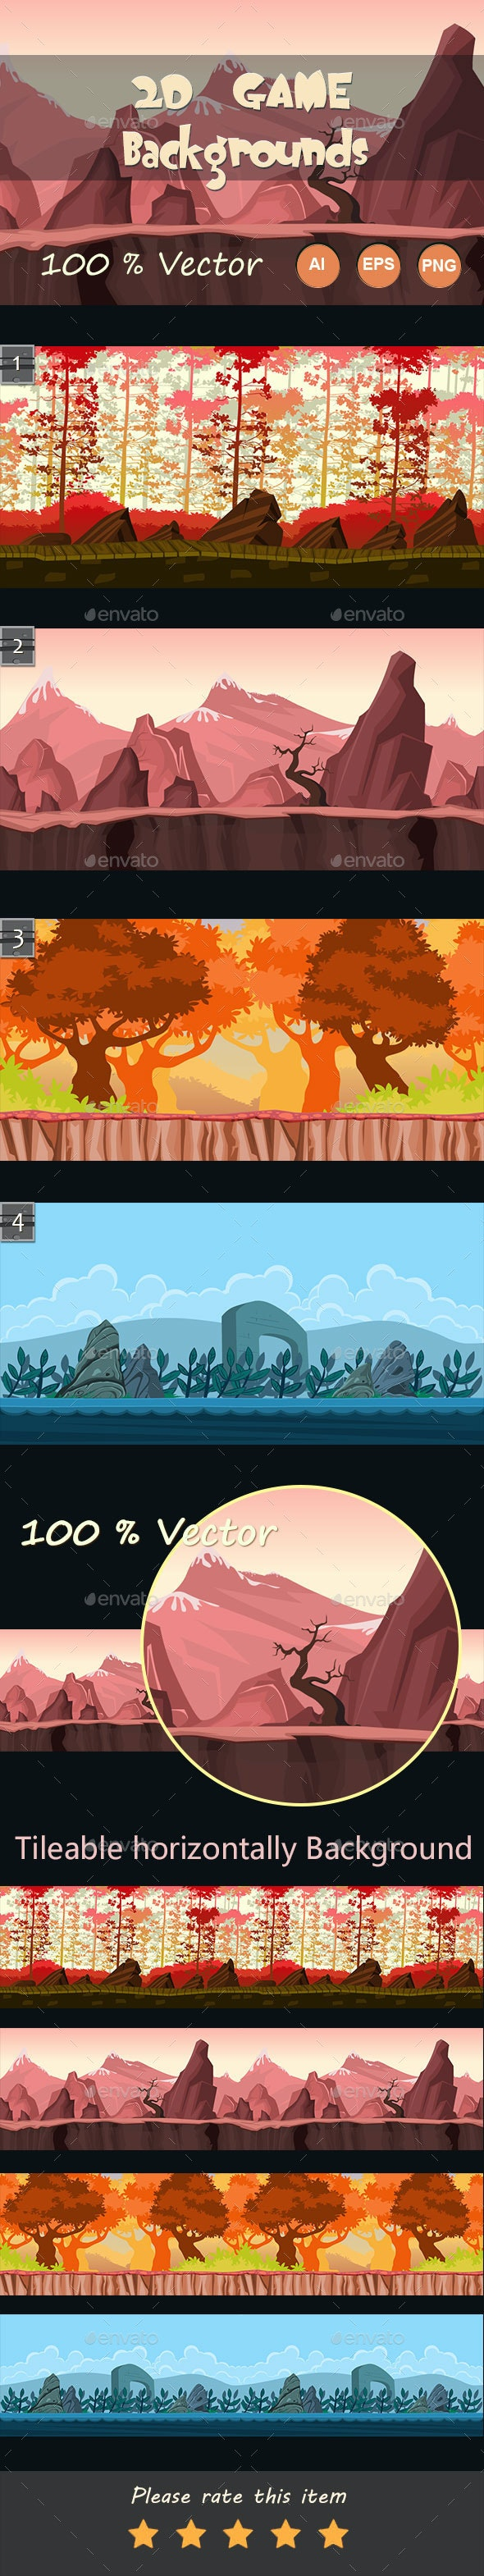 2d game backgrounds - Backgrounds Game Assets